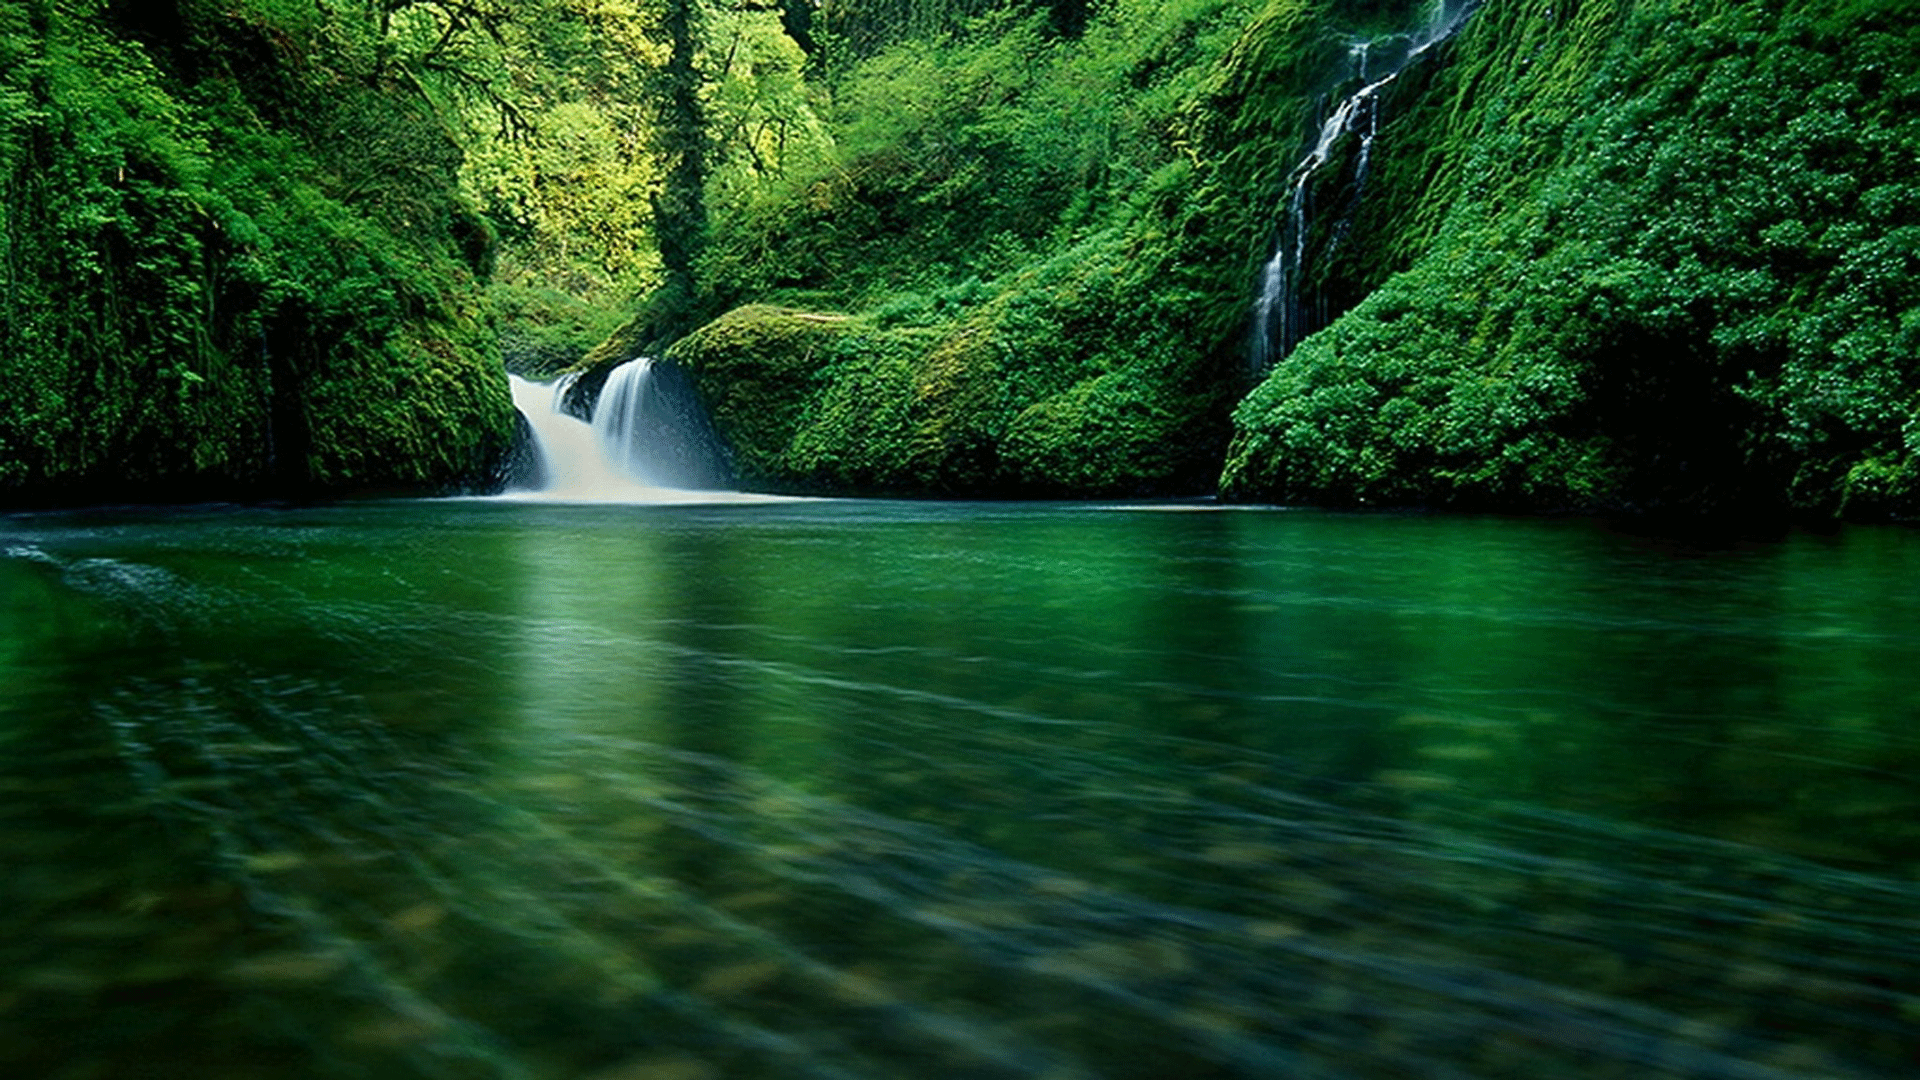 Nature Photos Free Download Wallpapers HD.